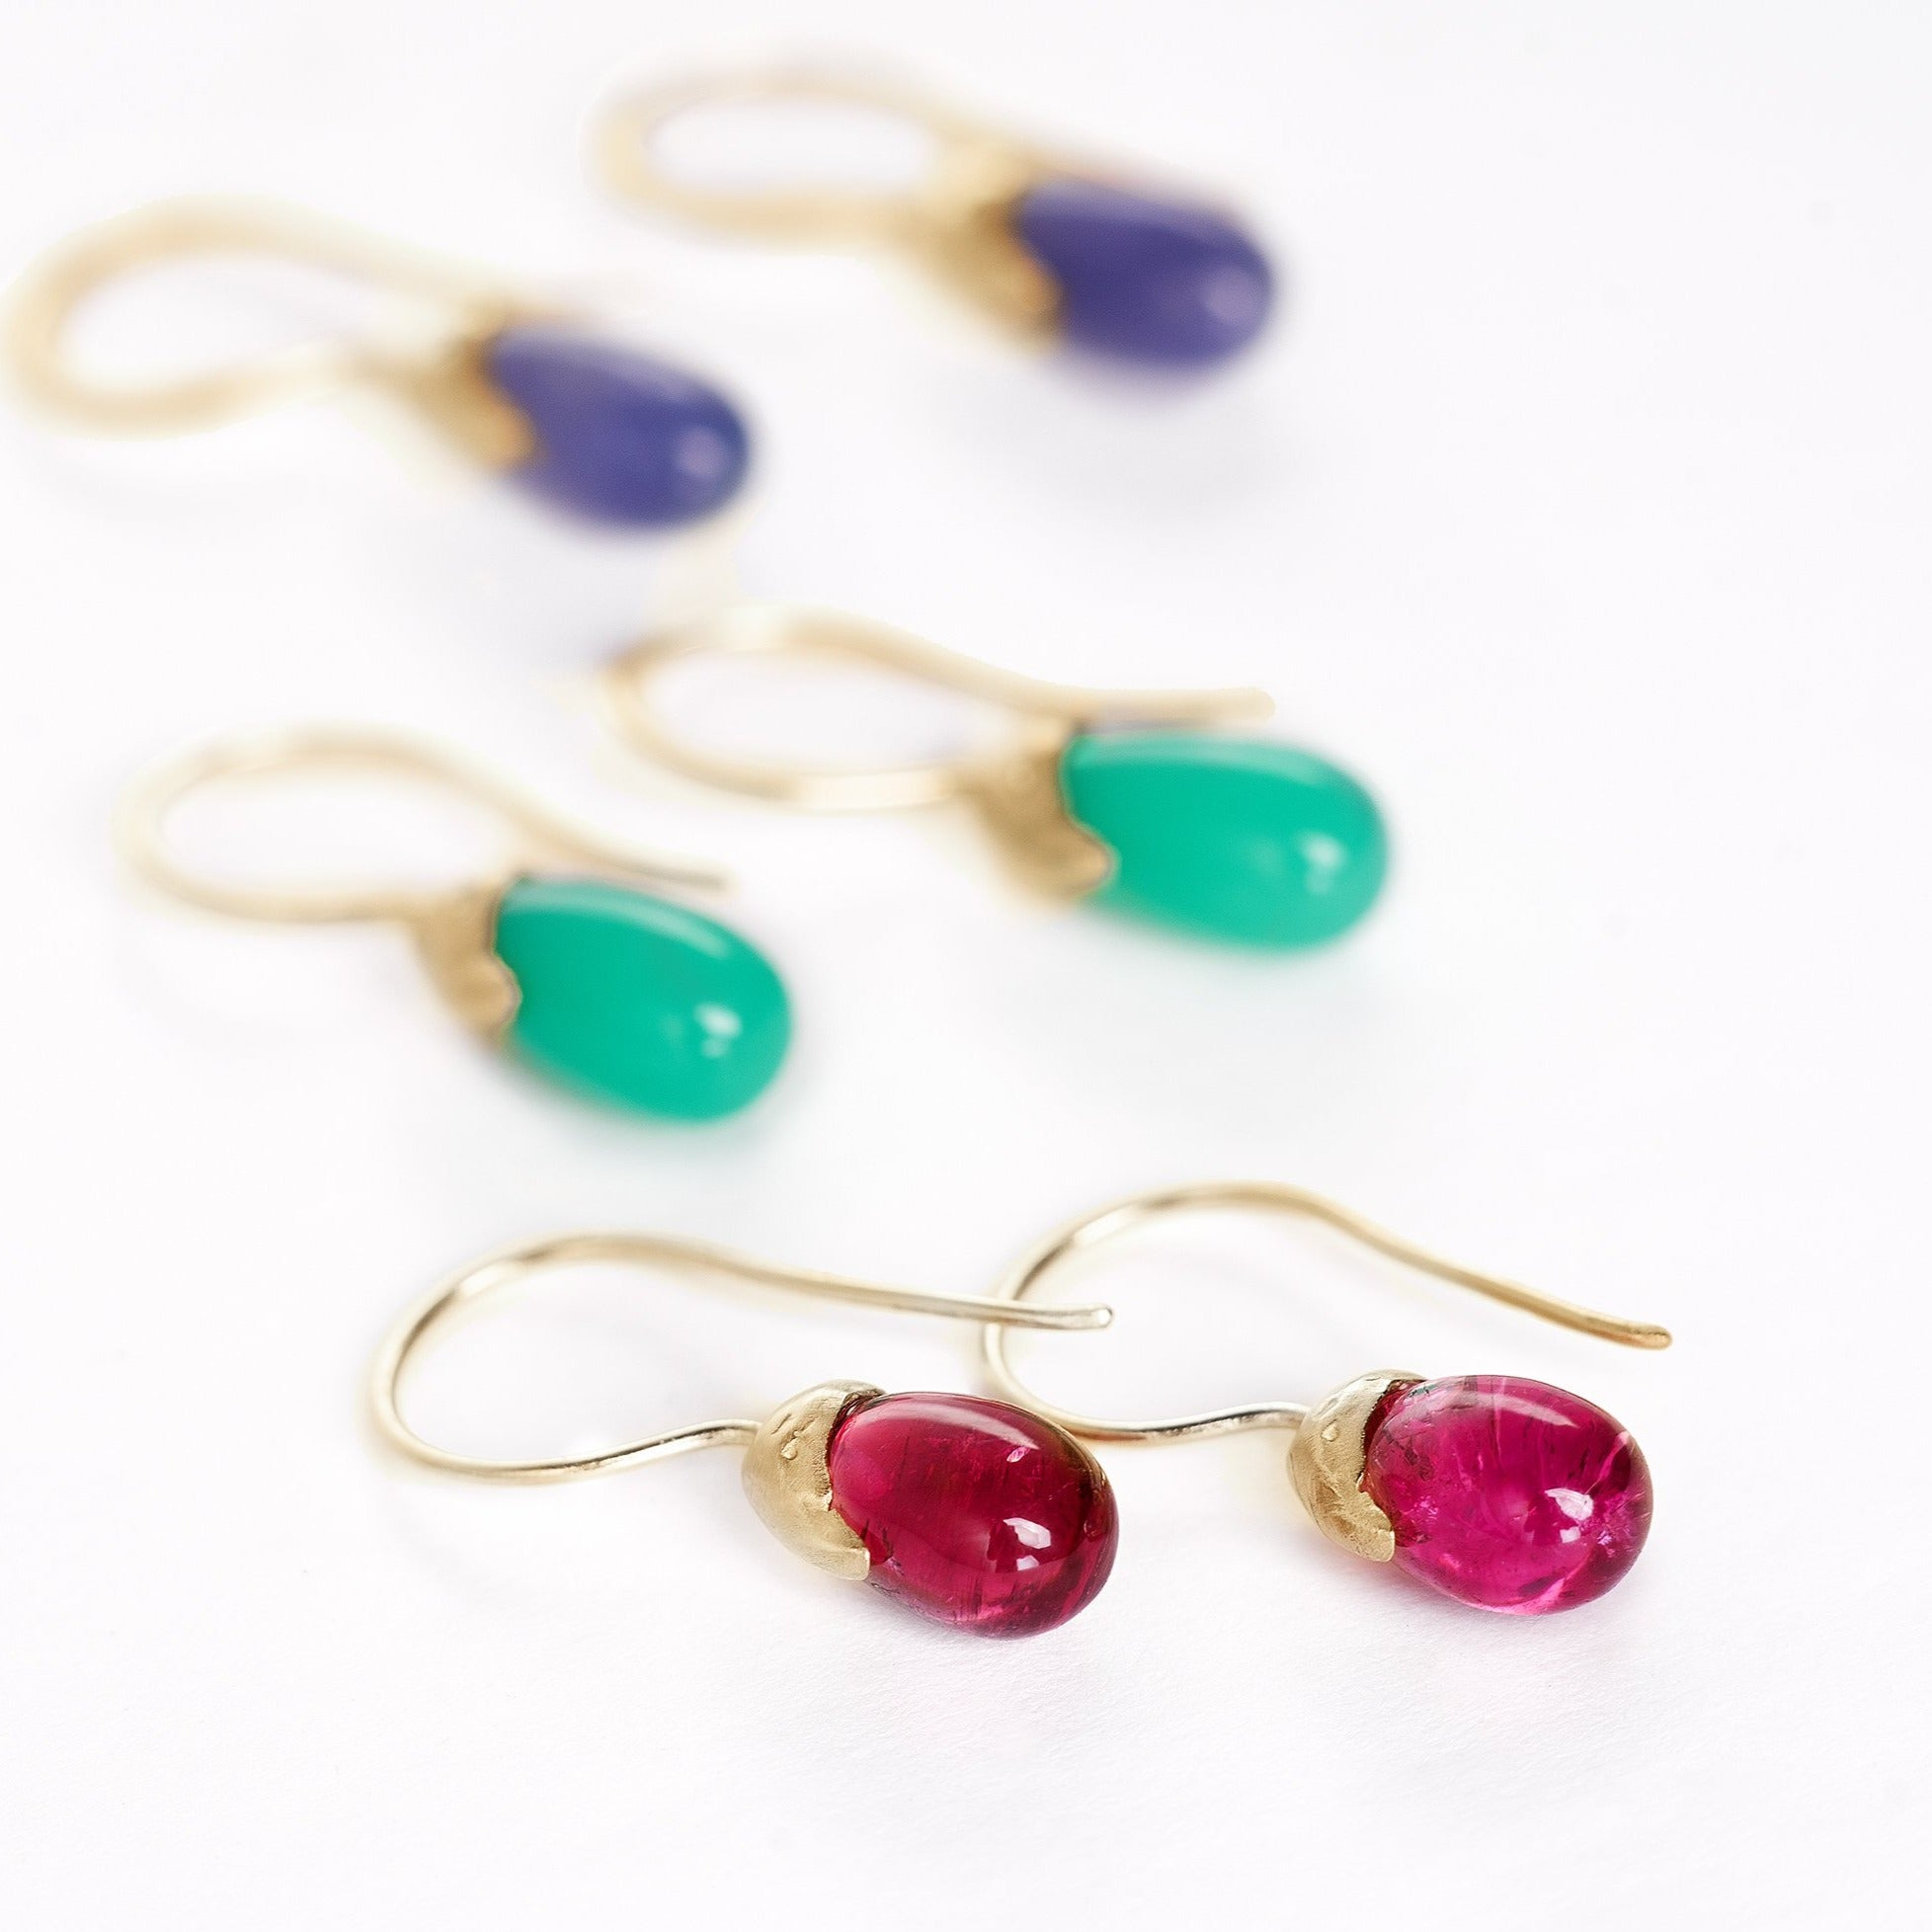 Natural  rubellite, tanzanite, tourmaline and chrysoprase  14kt gold earrings drops with organic handmade texture